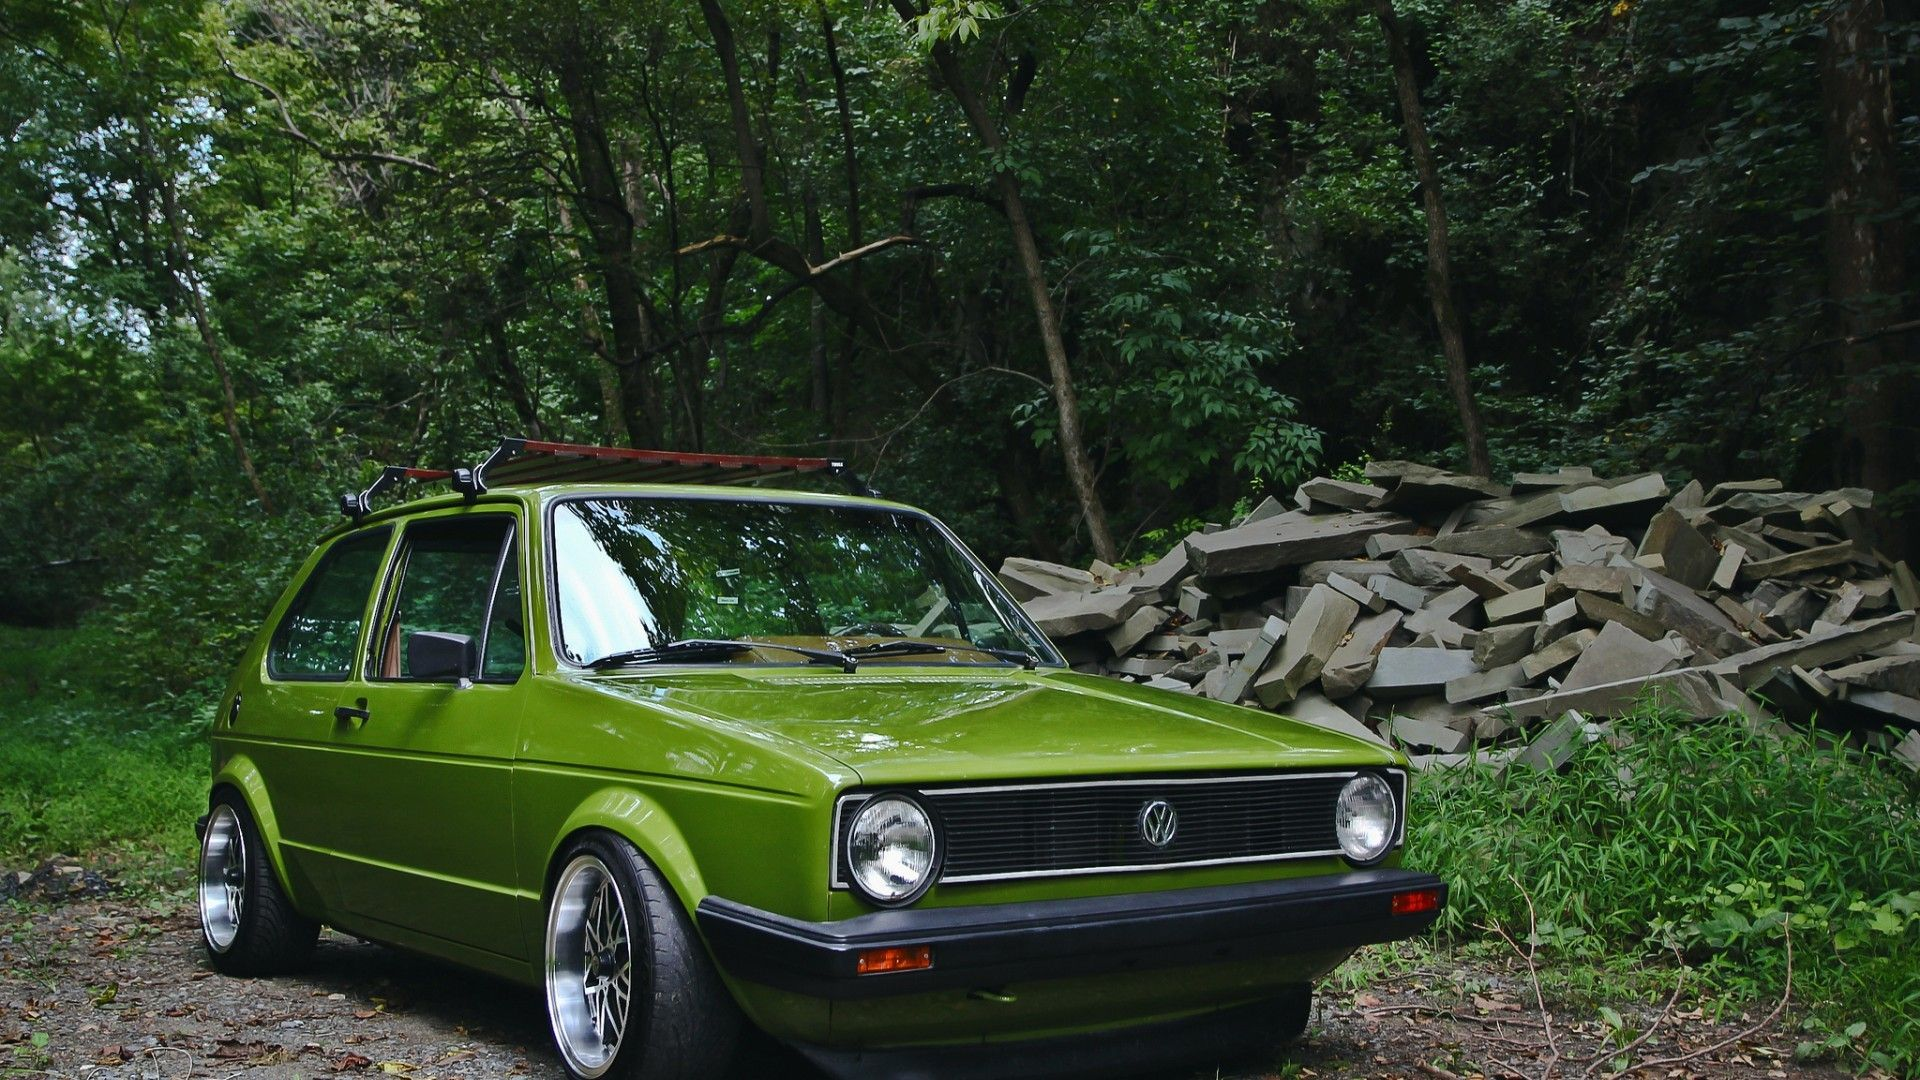 Vw 1 K Golf Car Wallpaper Volkswagen Vw 1 K Golf Wallpapers in 1920x1080